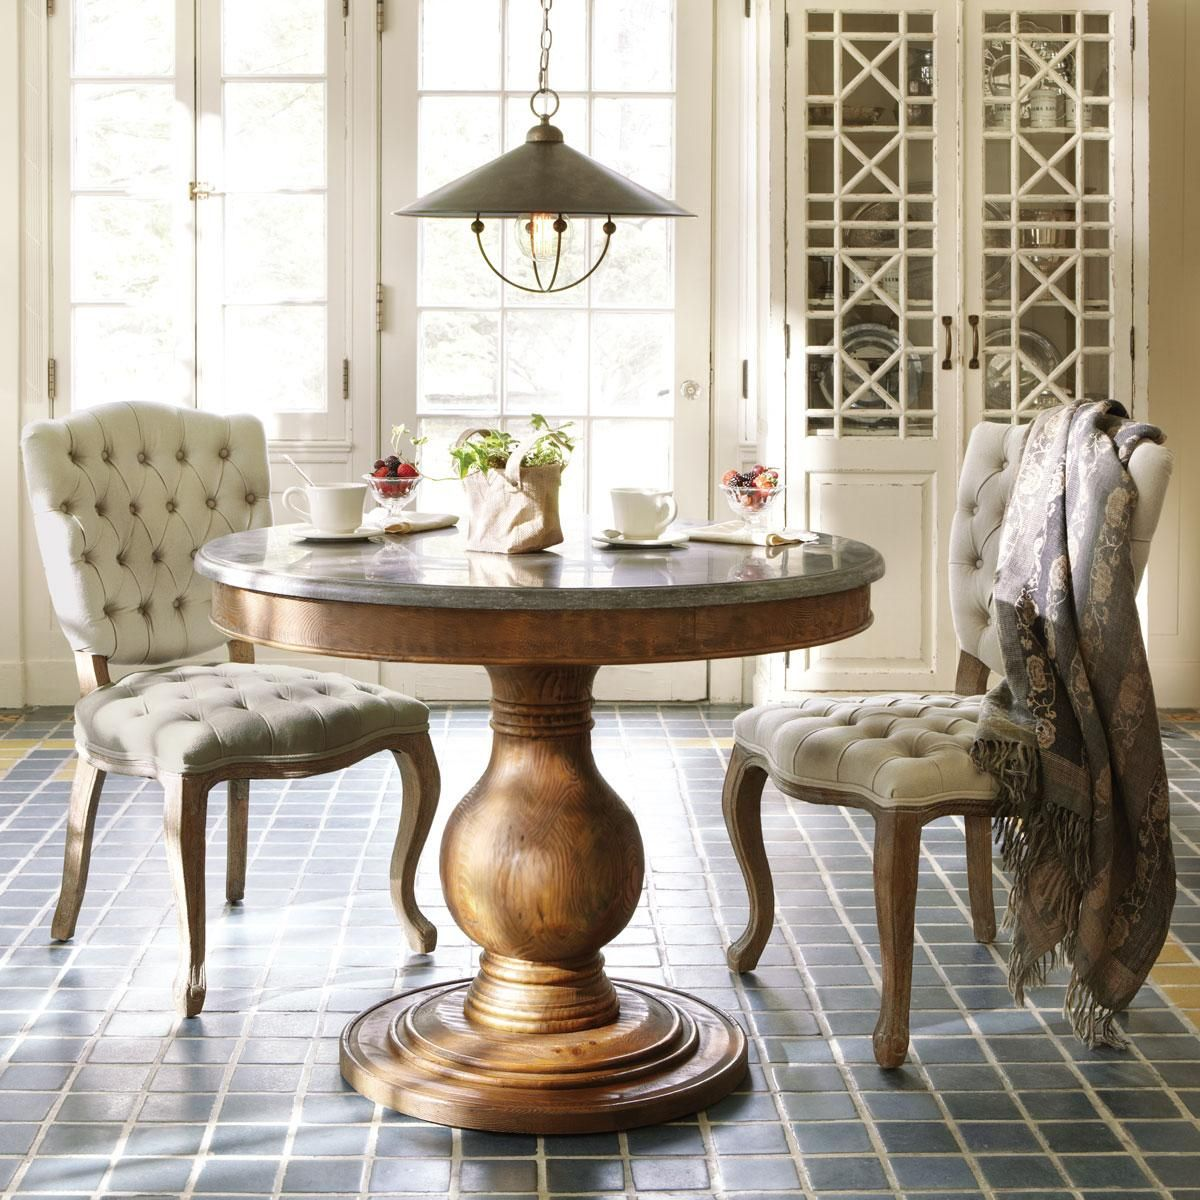 Pin by Arhaus on Dining | Pinterest | Kitchens, Room and Dining room ...